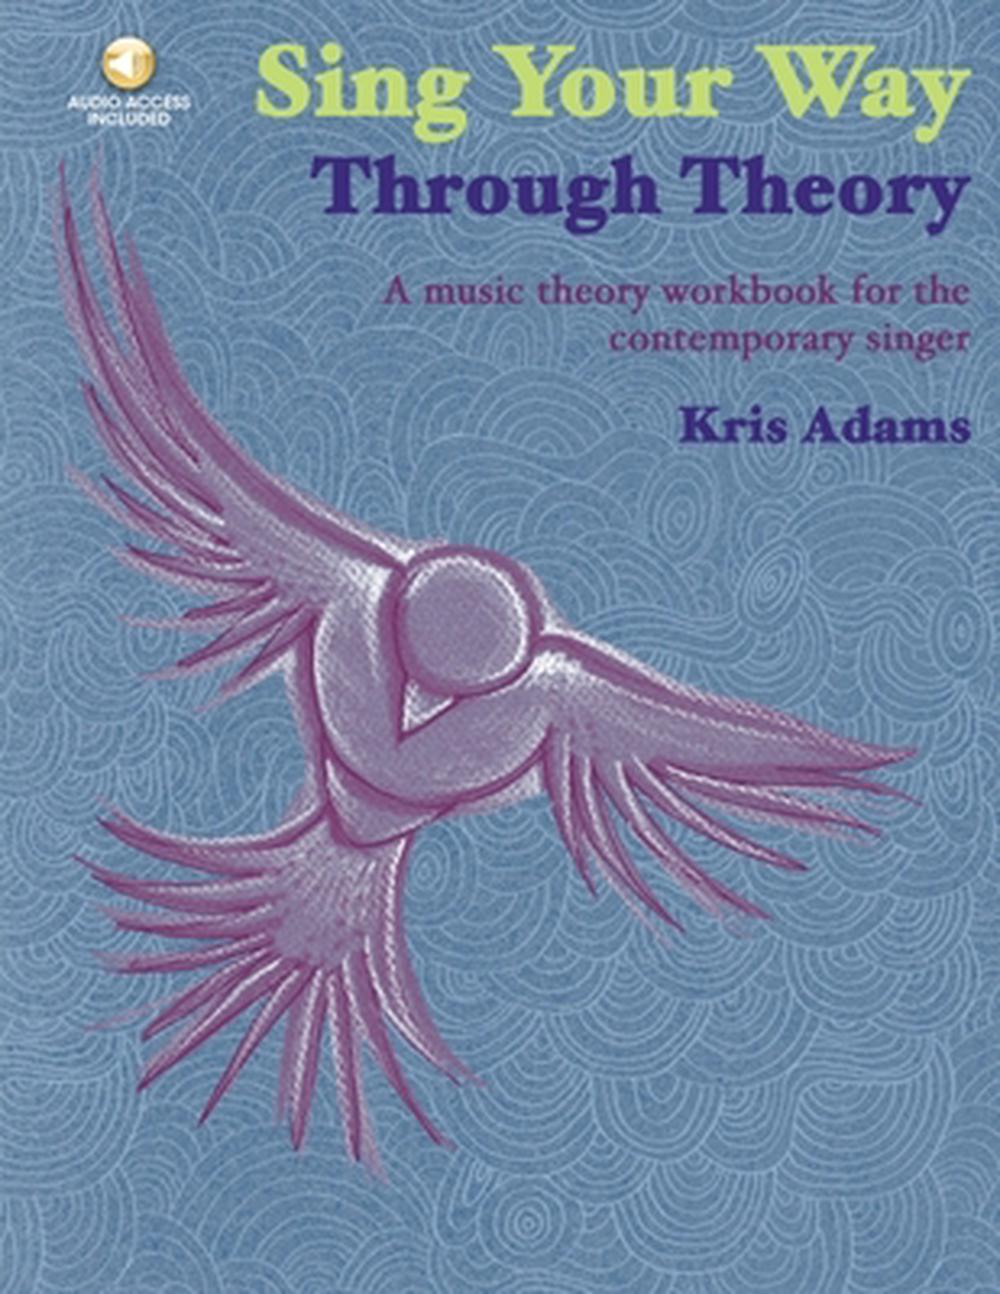 Sing Your Way Through Theory: A Music Theory Workbook for the Contemporary Singer